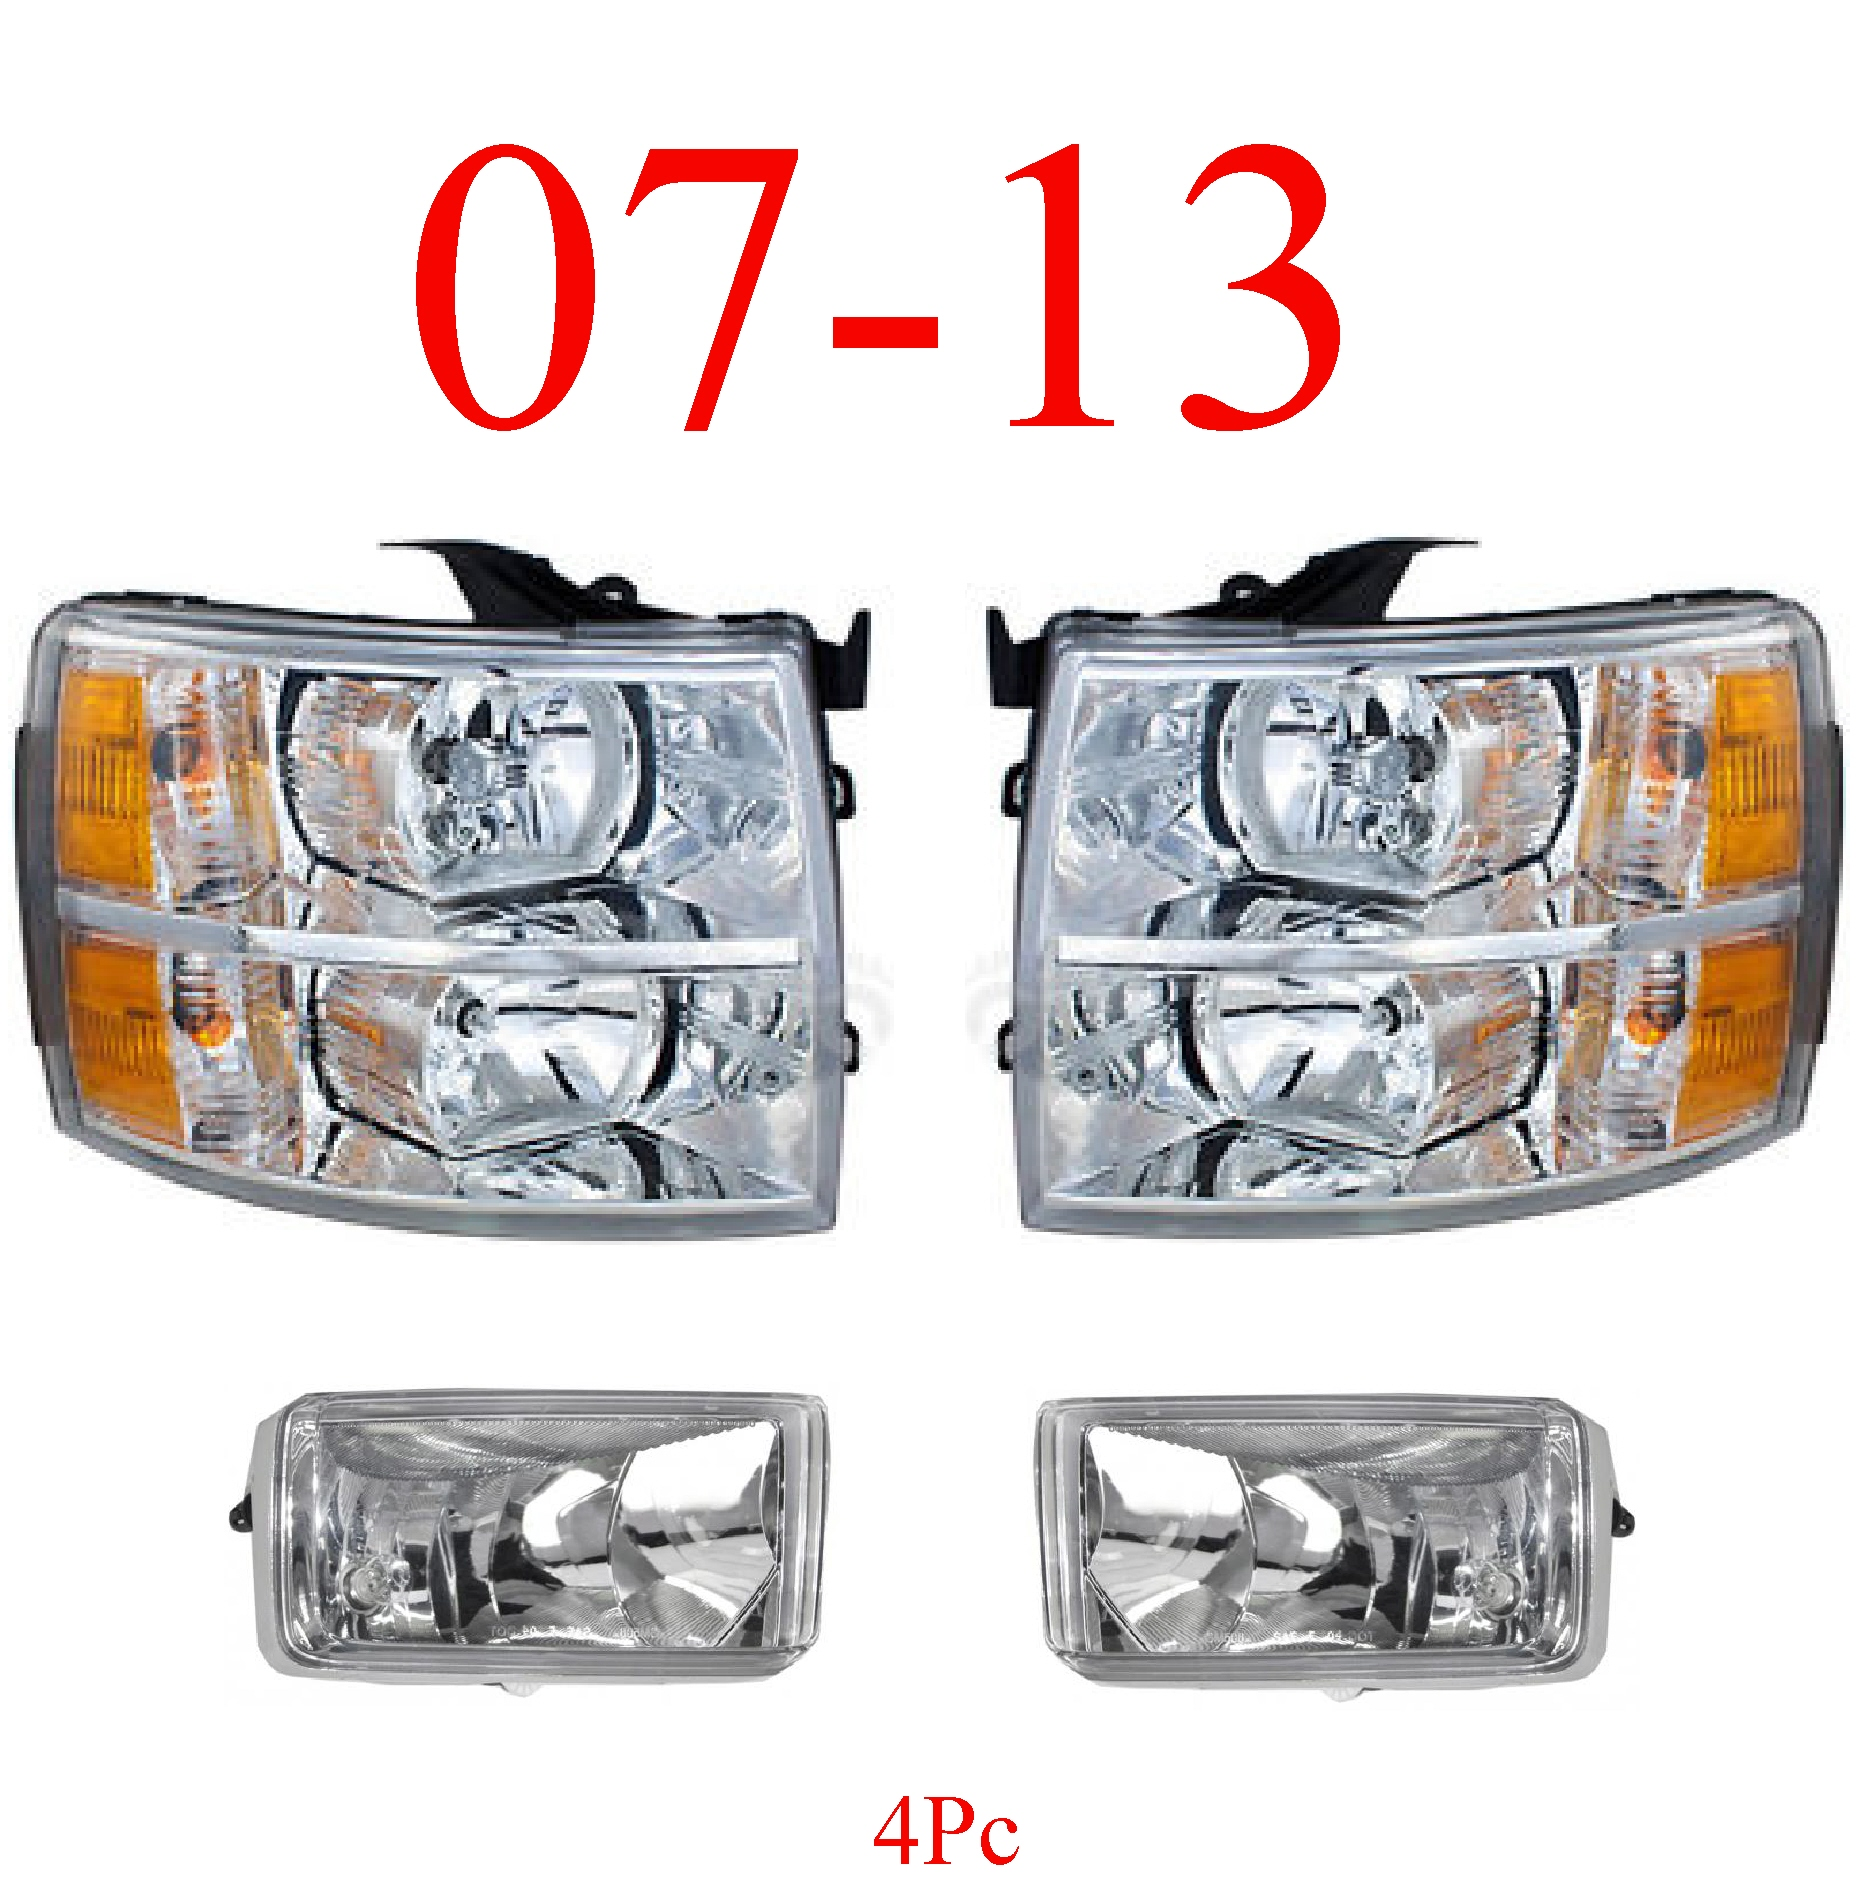 07-13 Chevy 4Pc Head & Fog Light Set